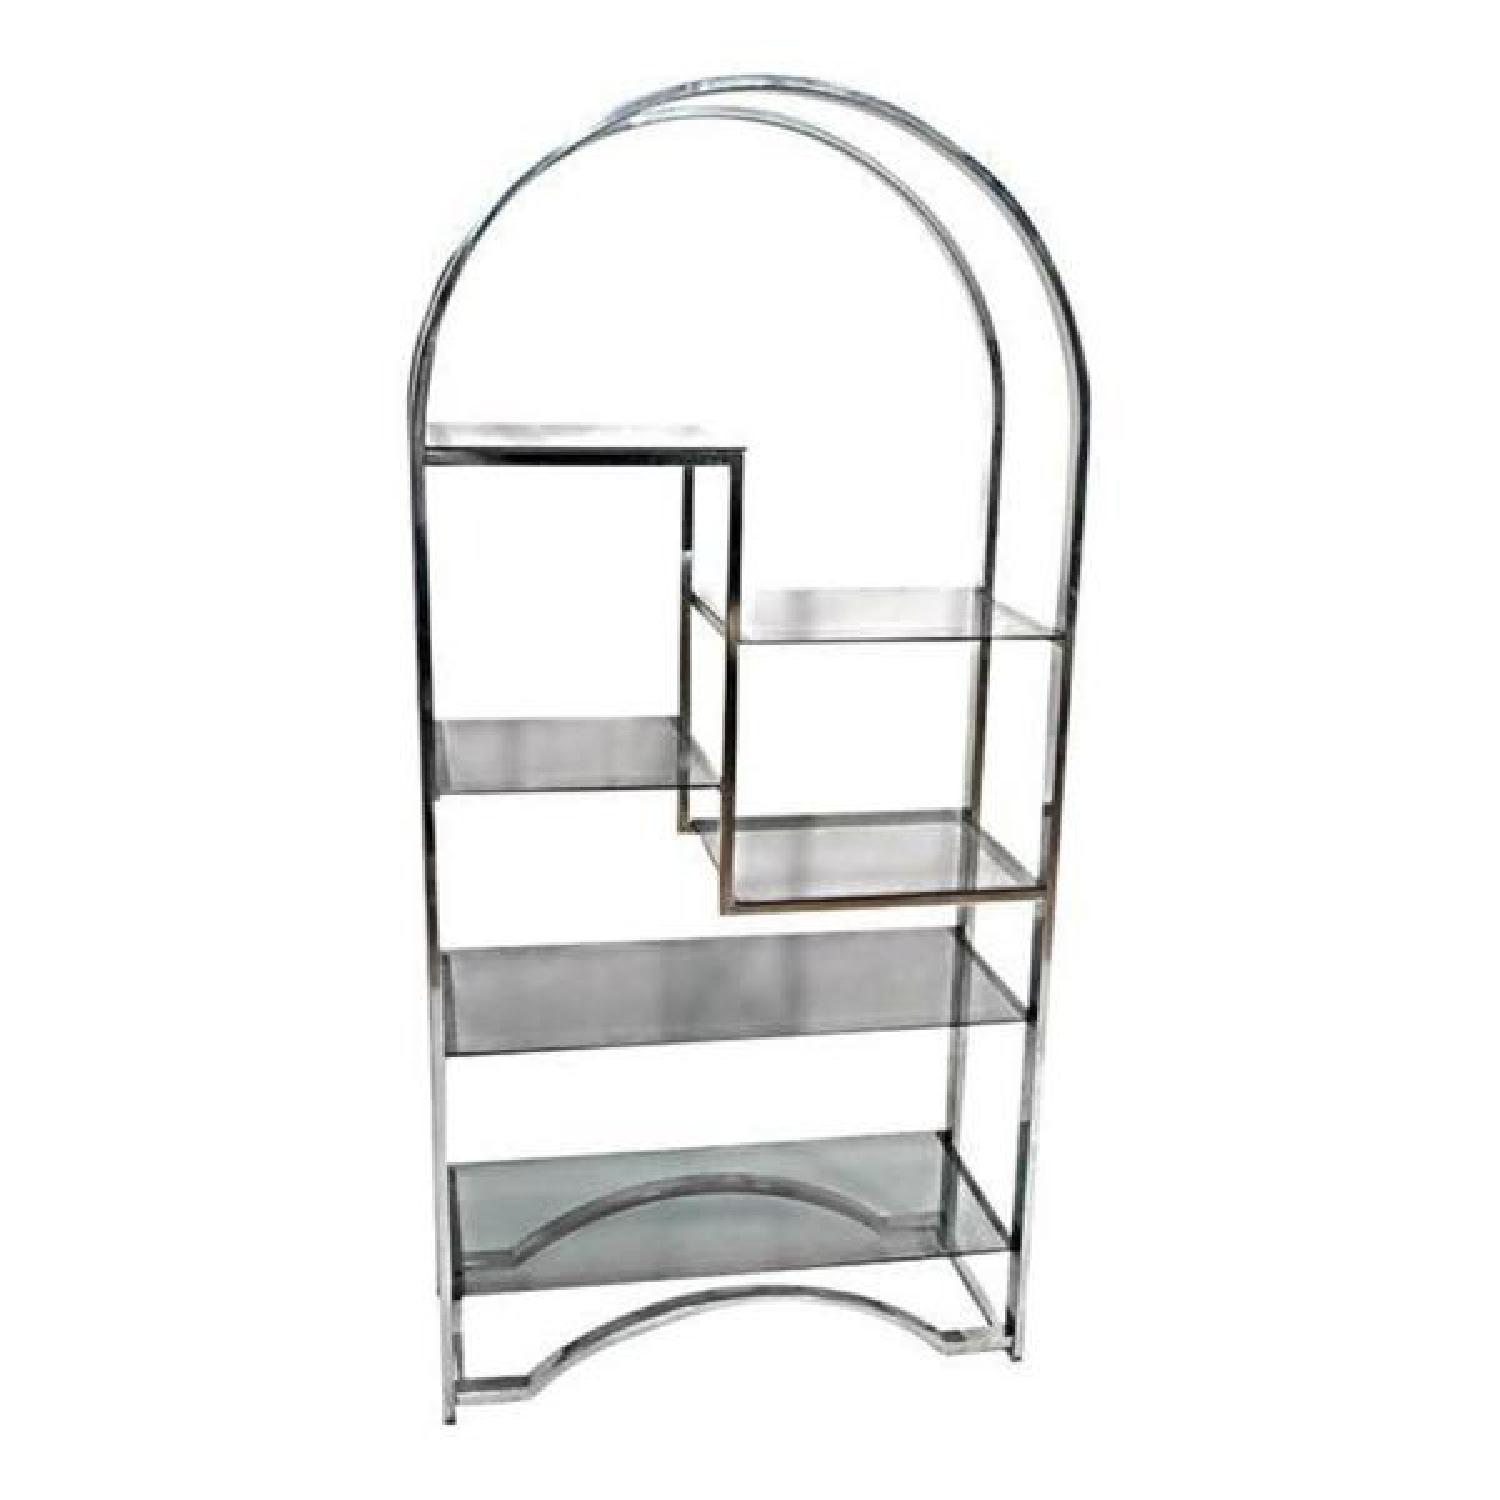 Milo Baughman Chrome Arched Top Etagere Smoked Glass Shelves - image-5